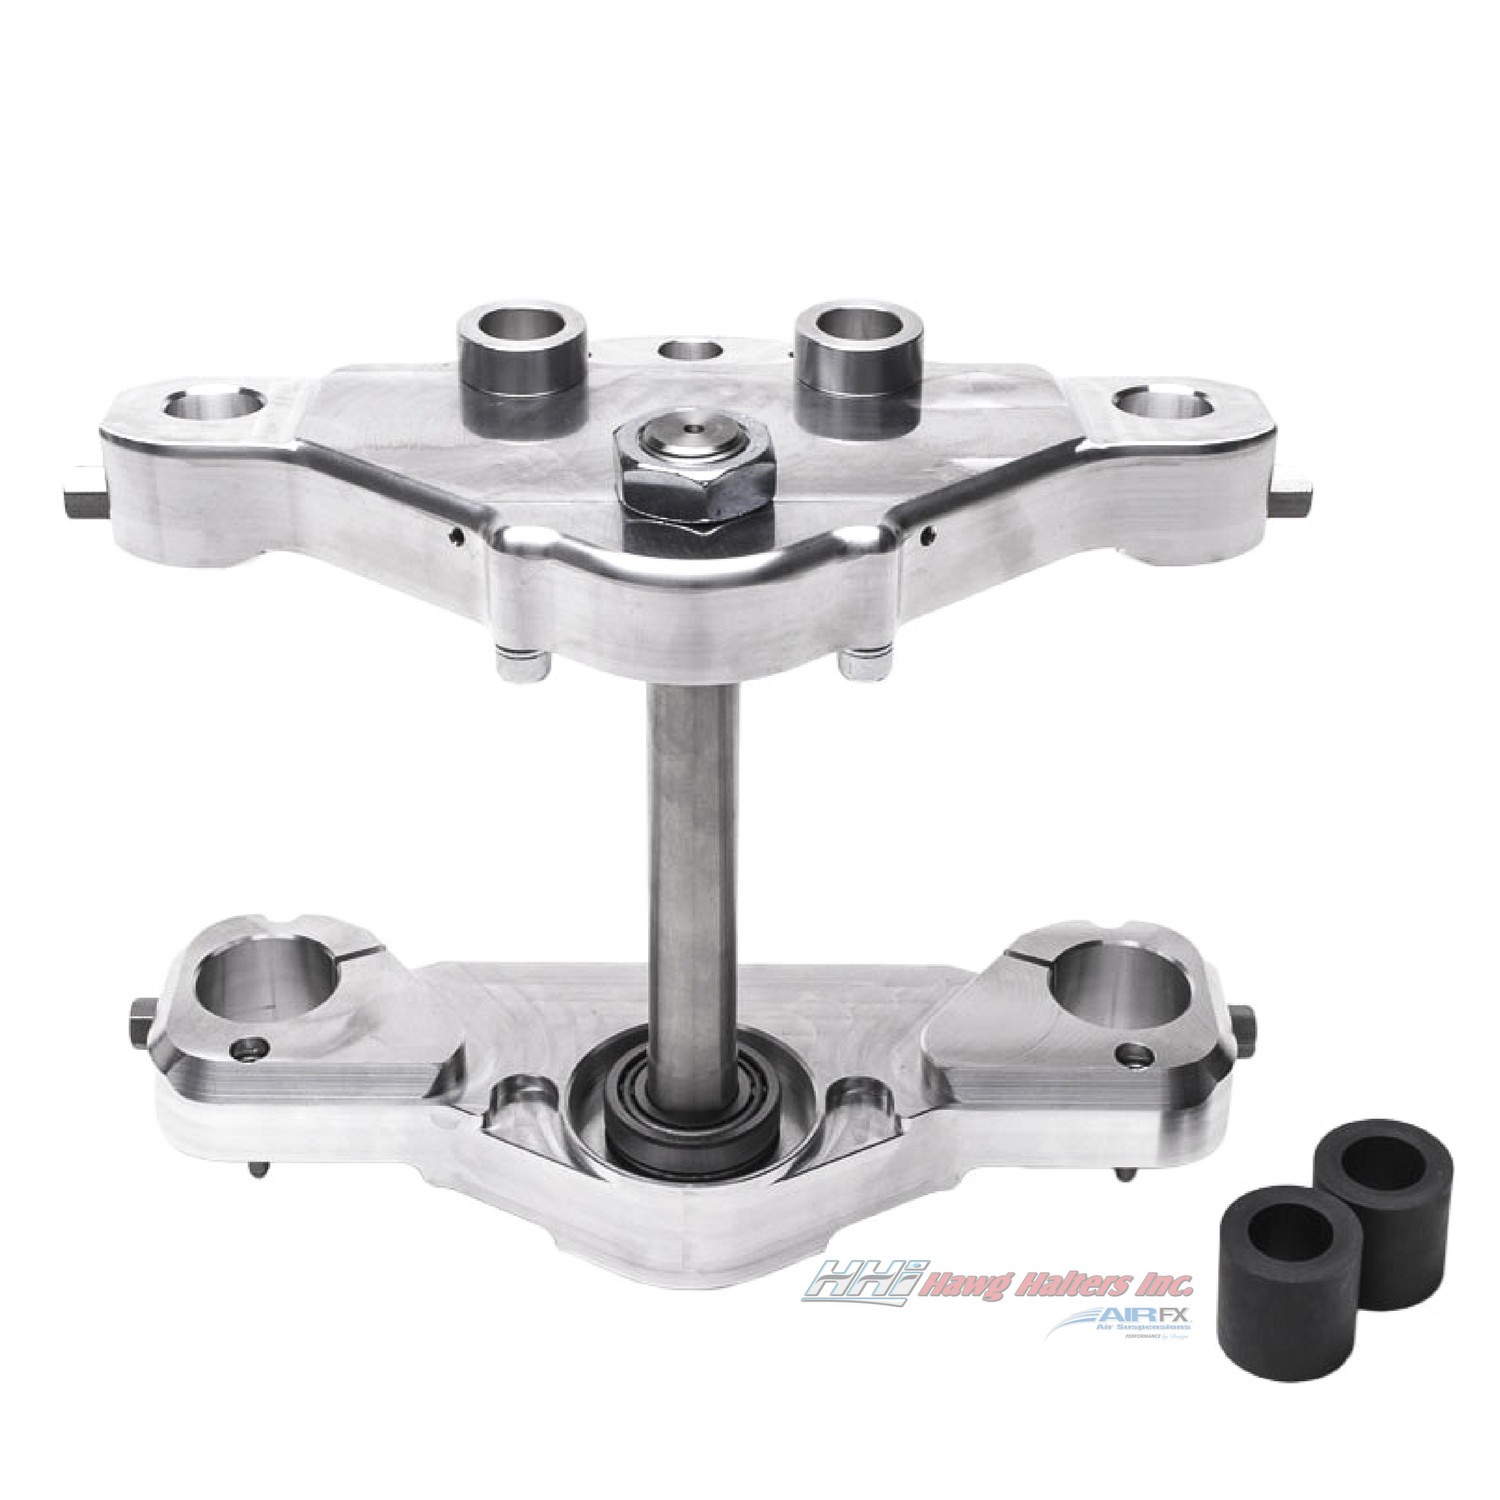 Bolt-On triple tree kit for a 23 inch wheel. Black anodized. Fits 2000-2013 FL touring